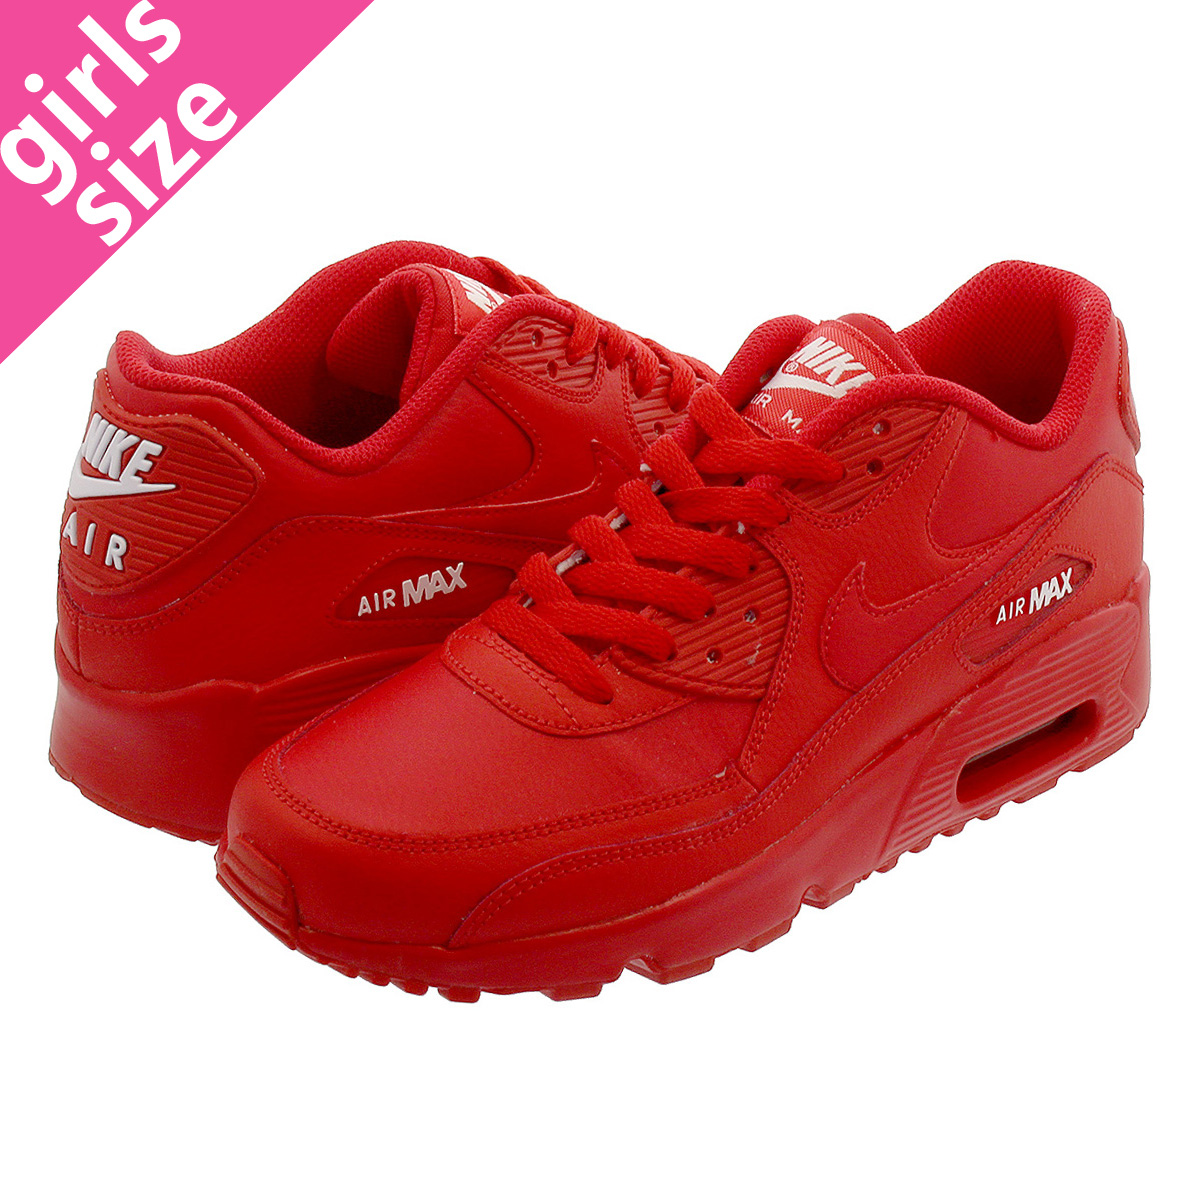 NIKE AIR MAX 90 LTR GS Kie Ney AMAX 90 leather GS UNIVERSITY RED 833,412 606